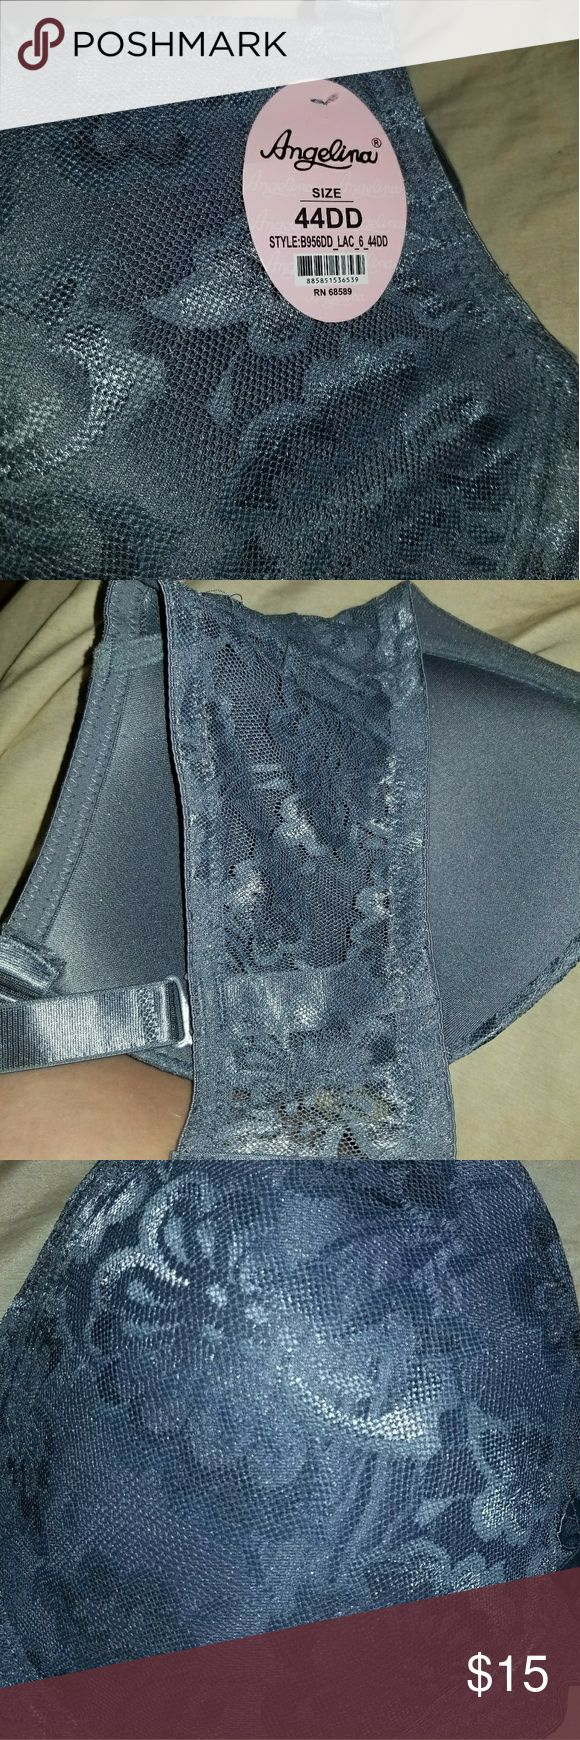 44dd Gray Bra I bought this online and it doesn't fit me. This is brand new!! I bought this through Groupon.  The lace is stretchable.  It has underwire for the support you need. I think it would be comfortable for the right person. Angelina Intimates & Sleepwear Bras